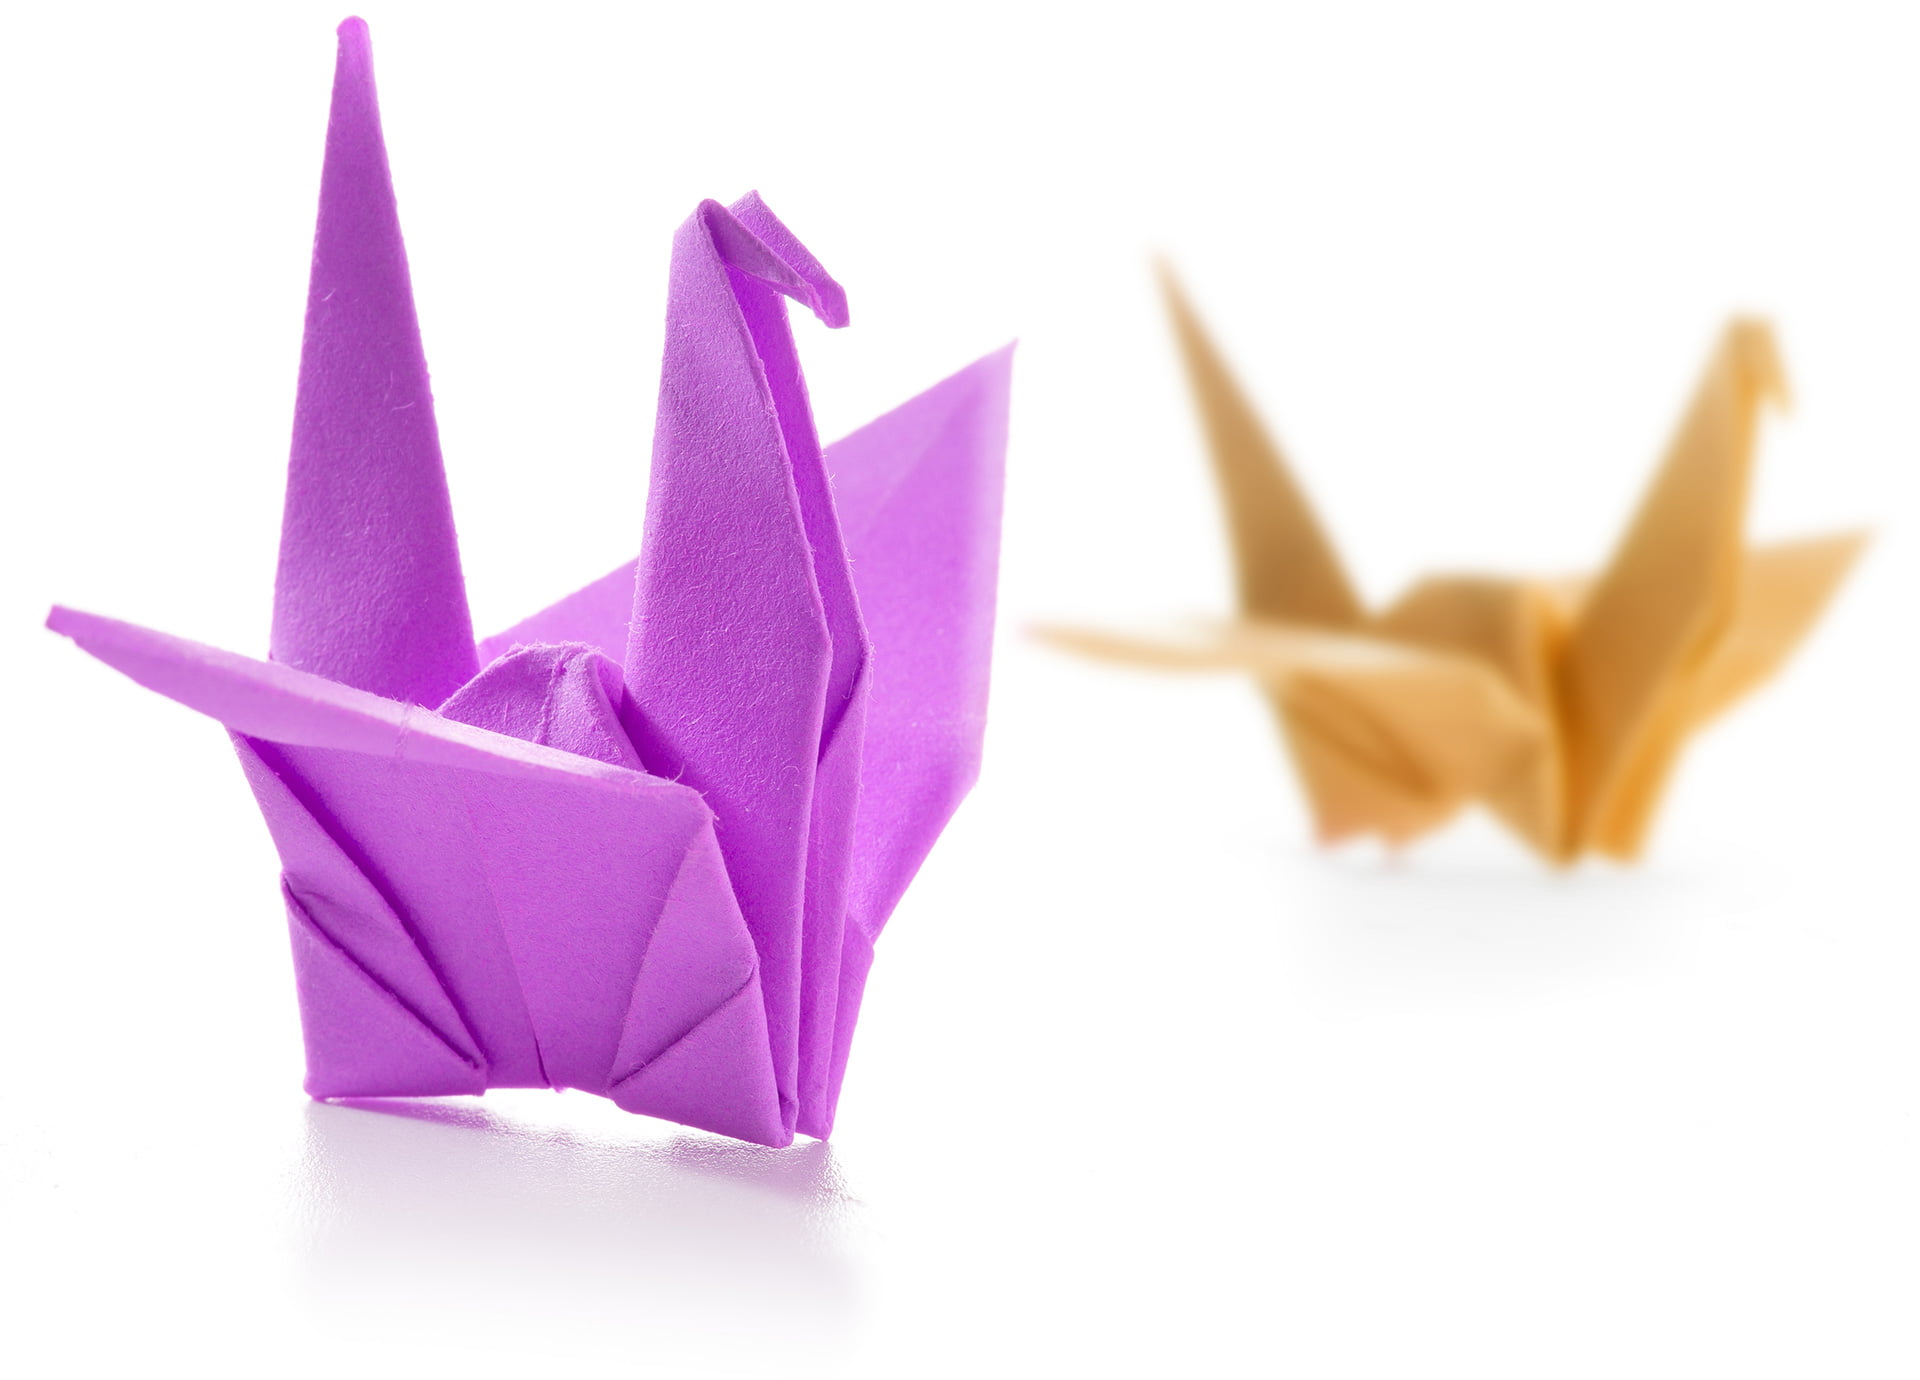 pair of colorful origami swans isolated on white p3sjp7c